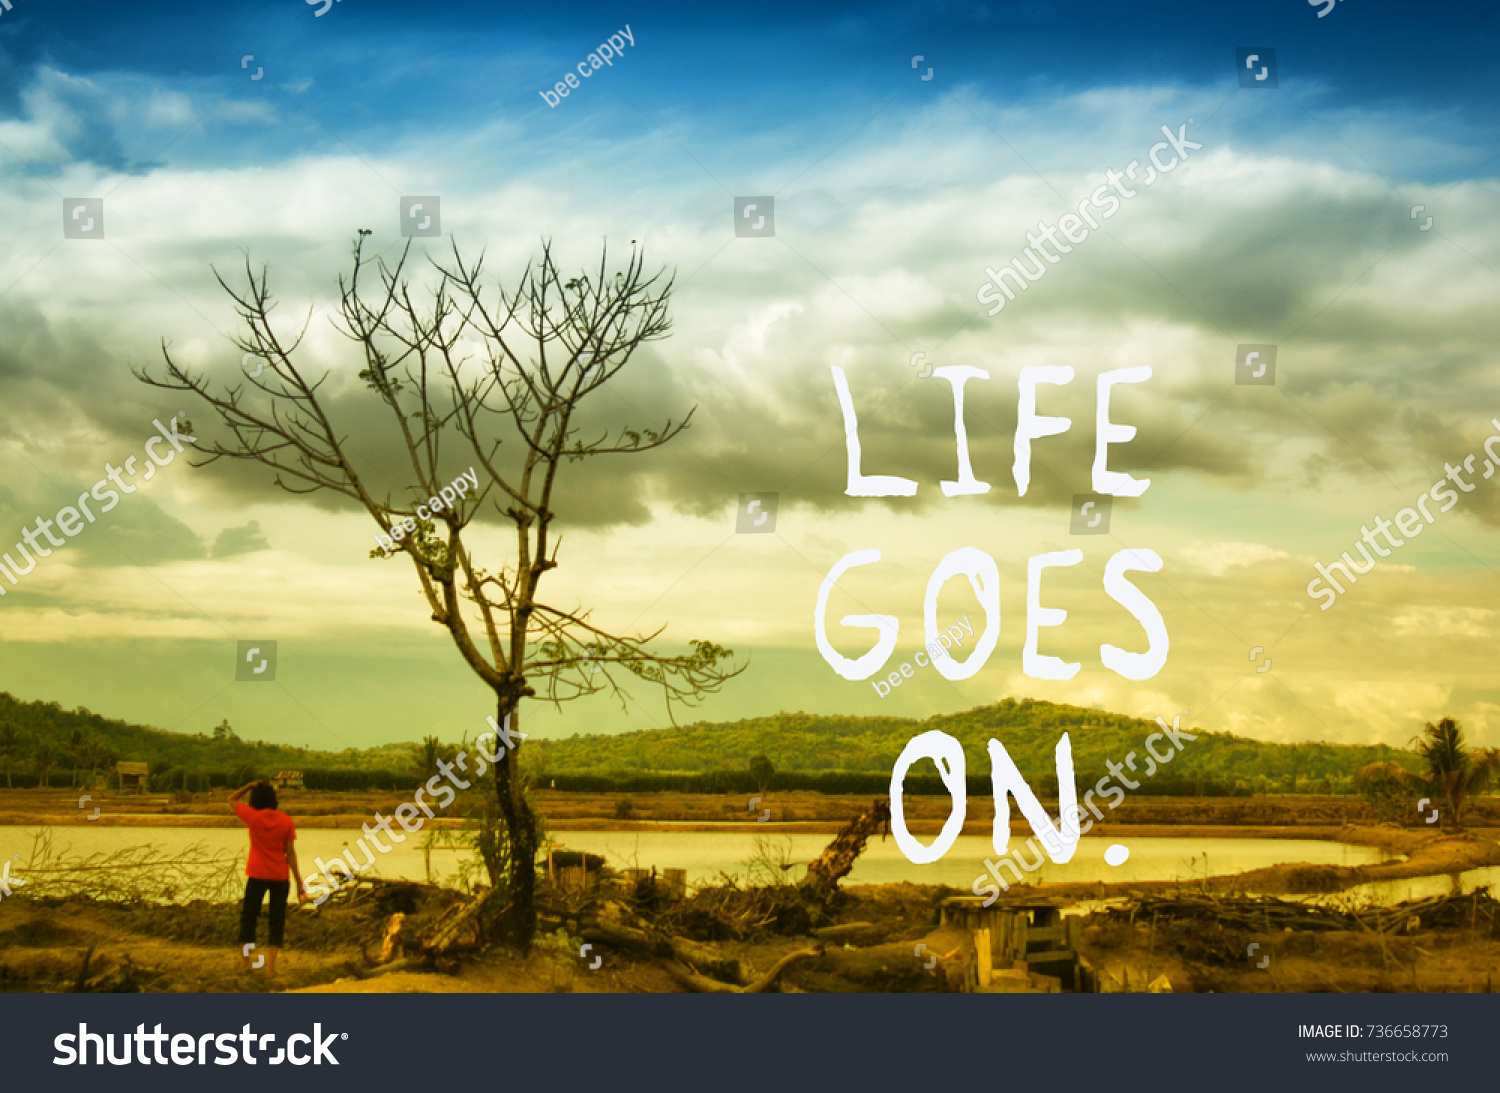 Natural Life Quotes Life Quotes Life Goes On Vintage Stock Photo 736658773  Shutterstock